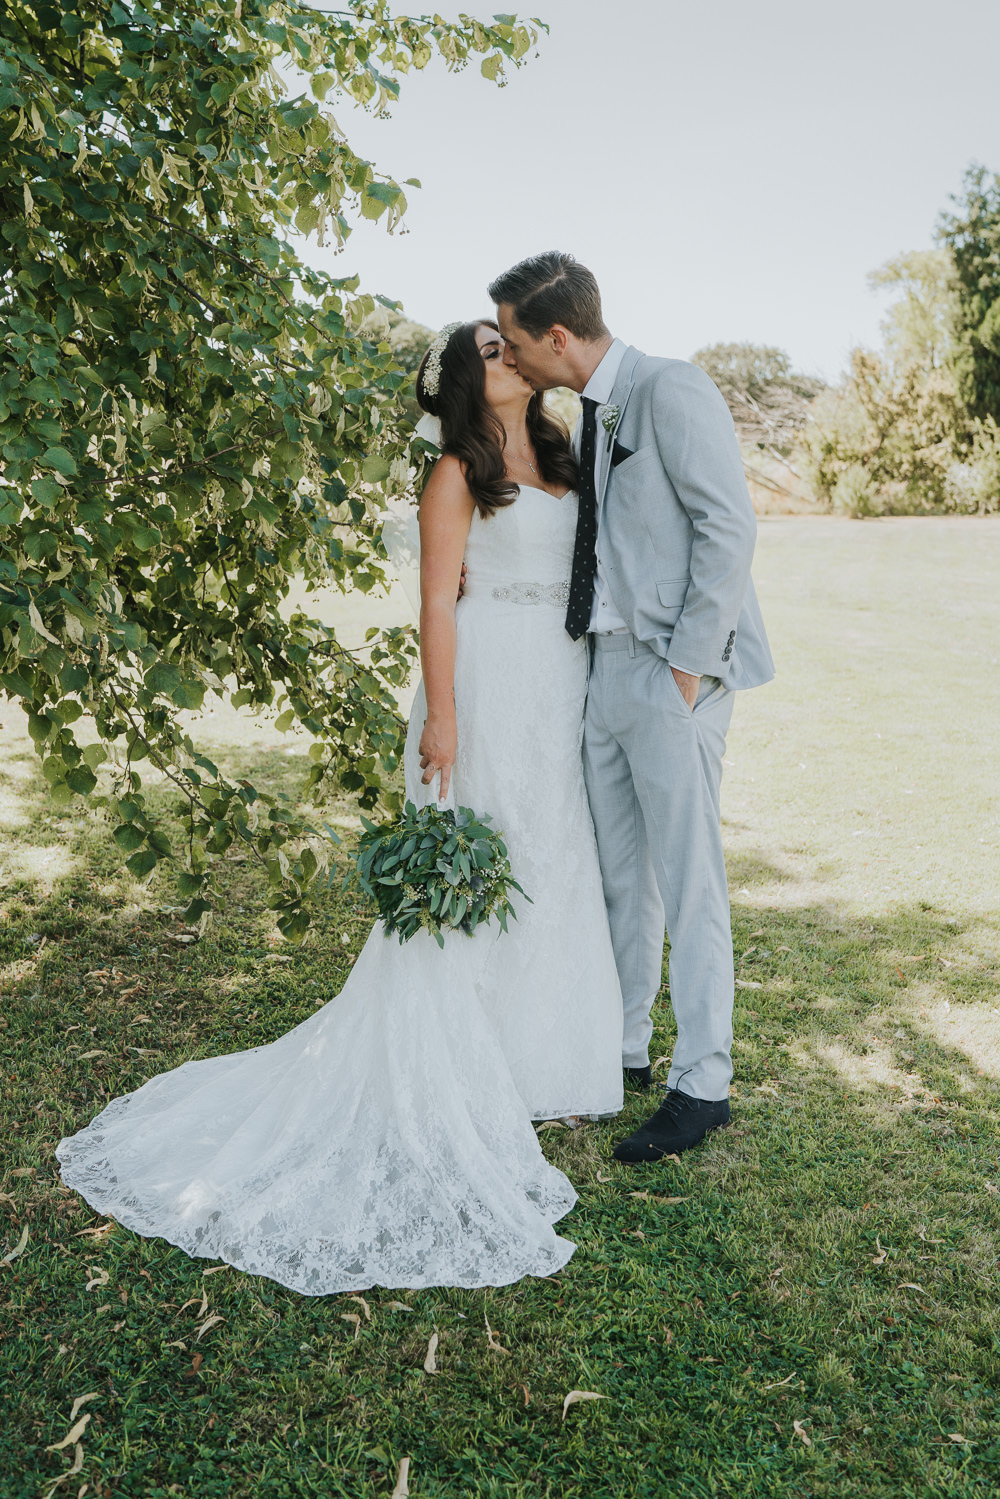 Intimate Outdoor Natural Relaxed Laid Back Summer Bride Groom Kiss Greenery Foliage Bouquet | Prested Hall Wedding Grace Elizabeth Photography